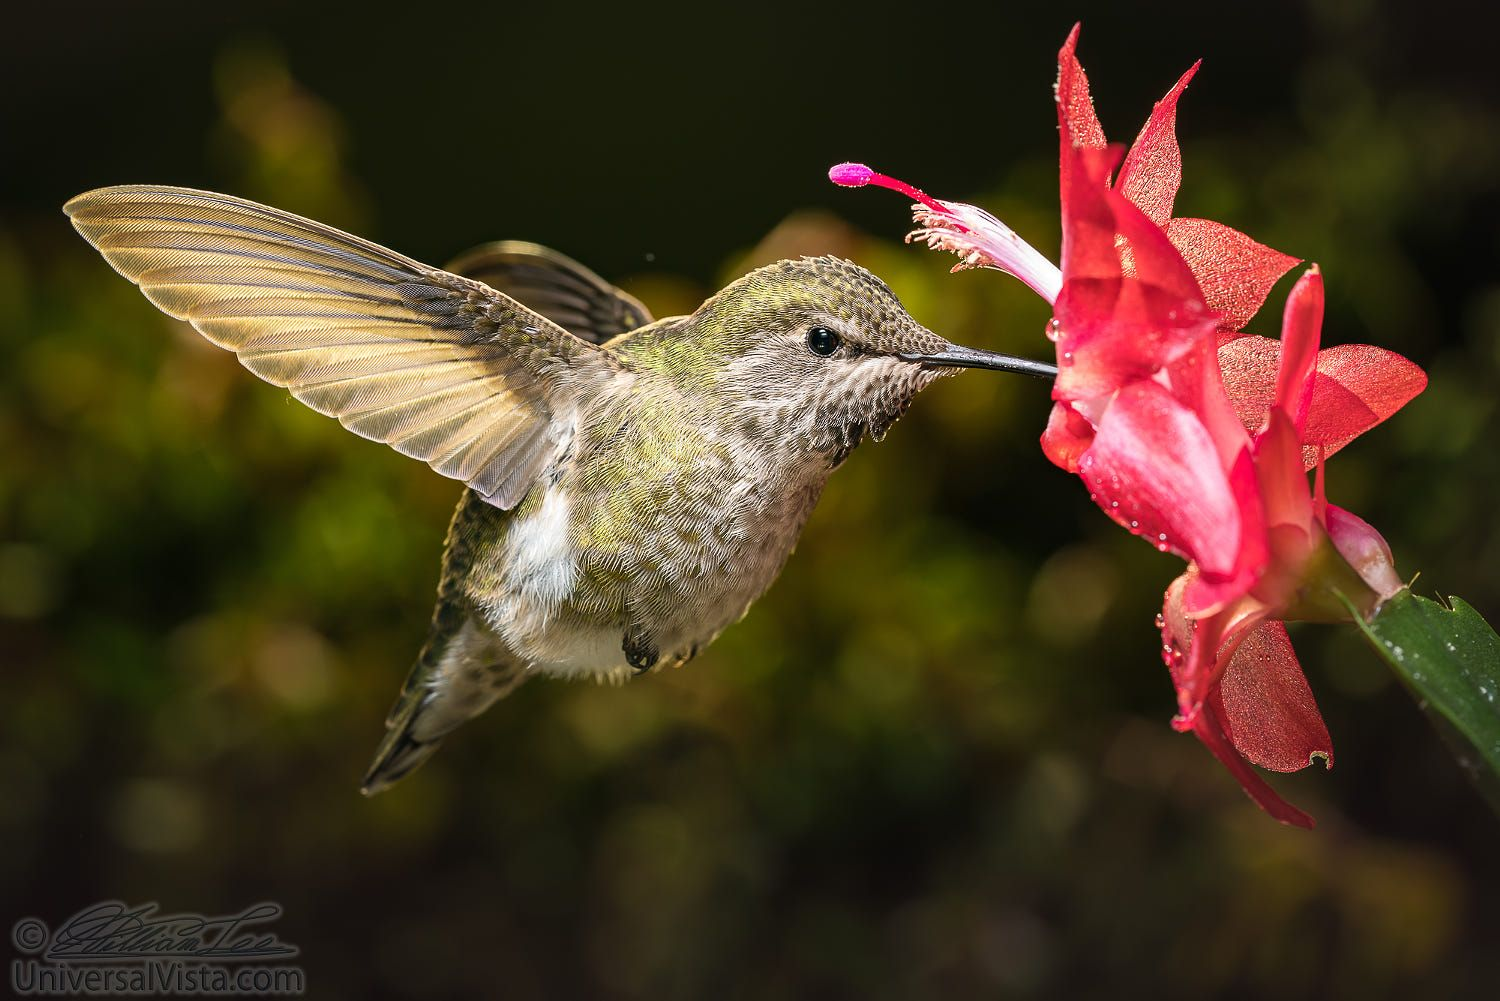 Hummingbird and her favorite red flower by William Lee on